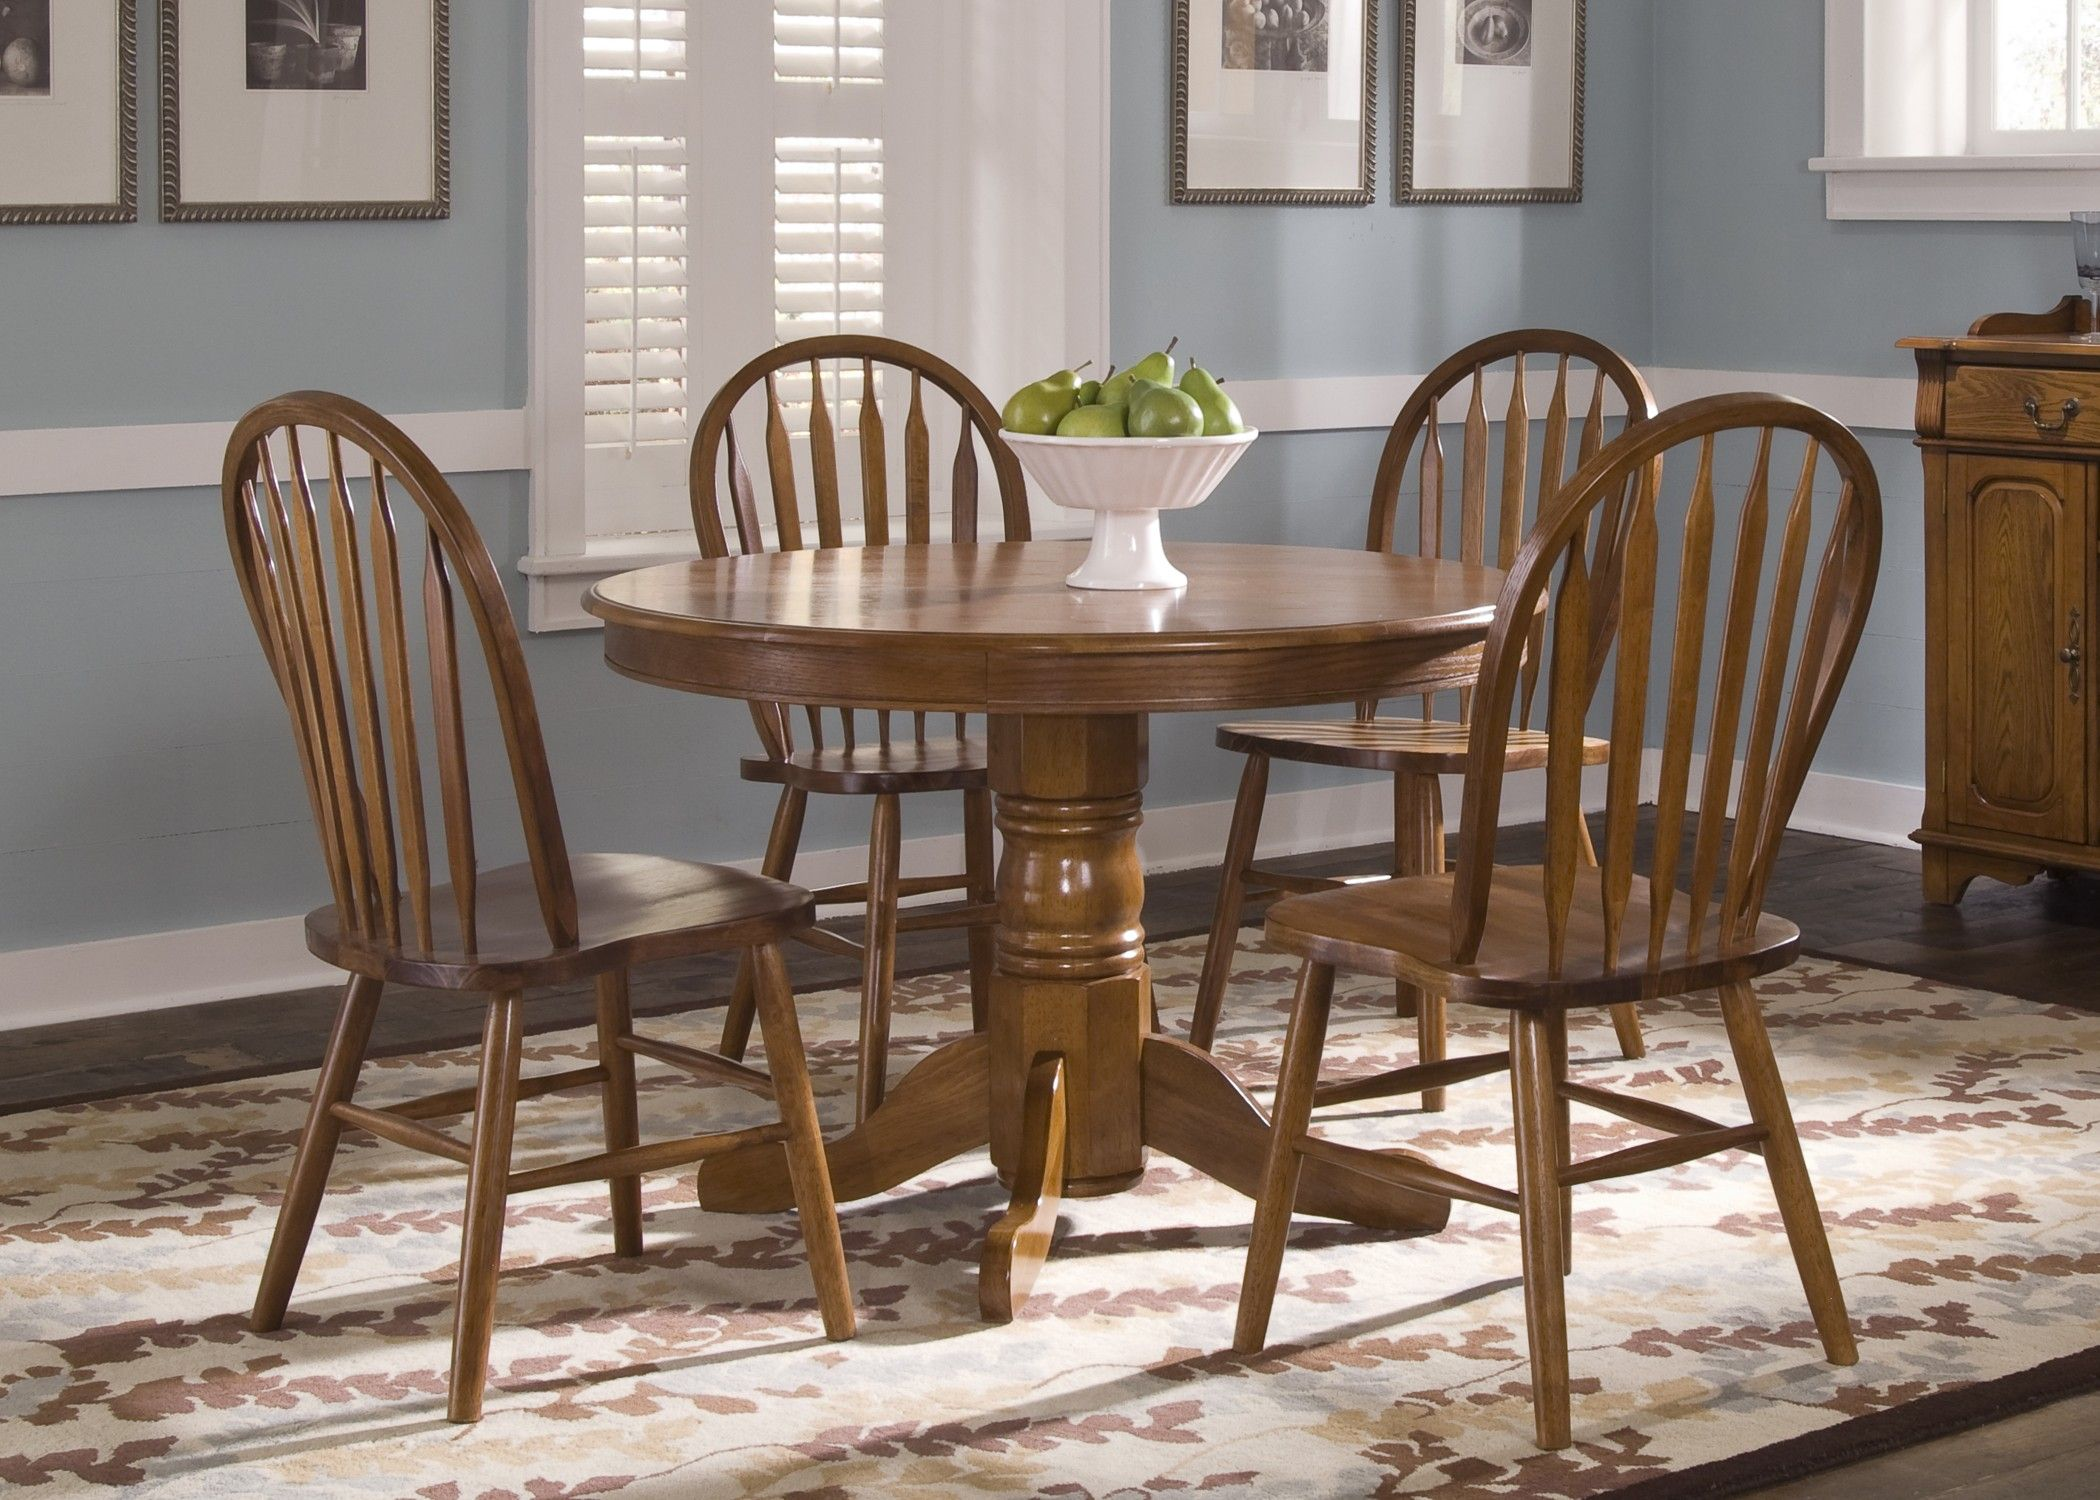 DT McCall U0026 Sons Round Table W Four Chairs. Dining Room Option